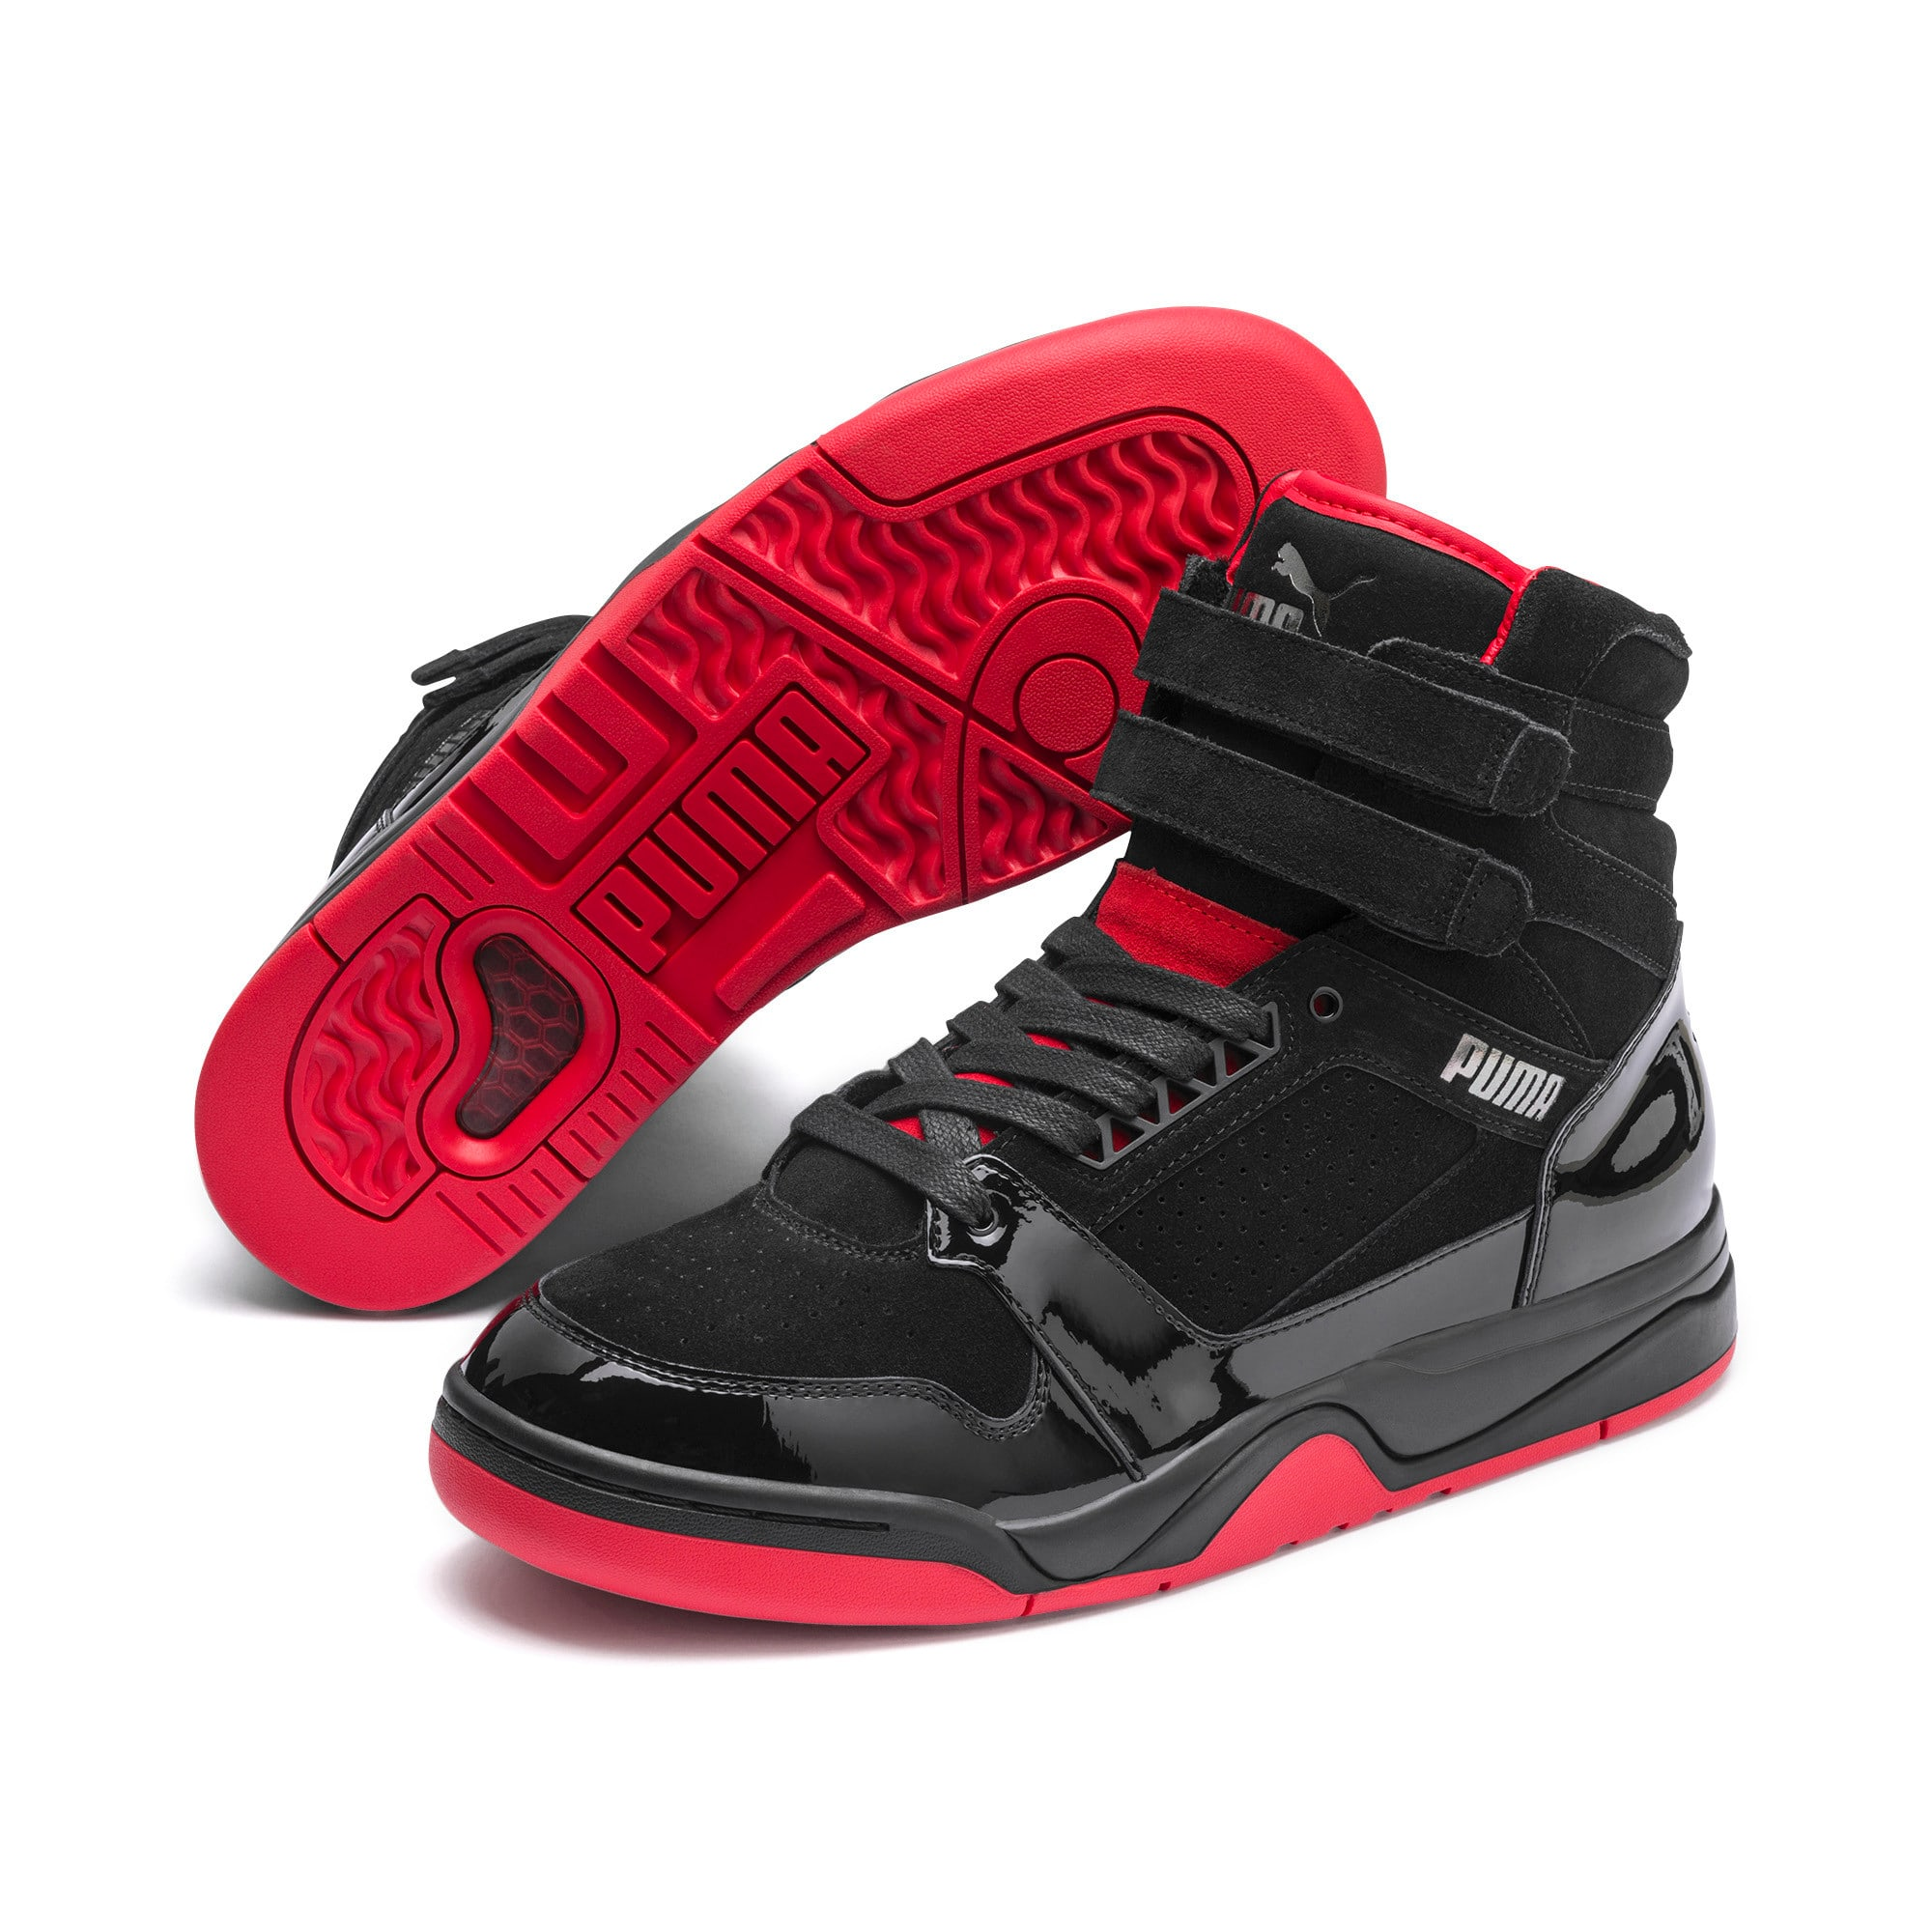 Thumbnail 3 of Palace Guard Red Carpet Mid-Cut Basketball Shoes, Puma Black-Risk Red-Bronze, medium